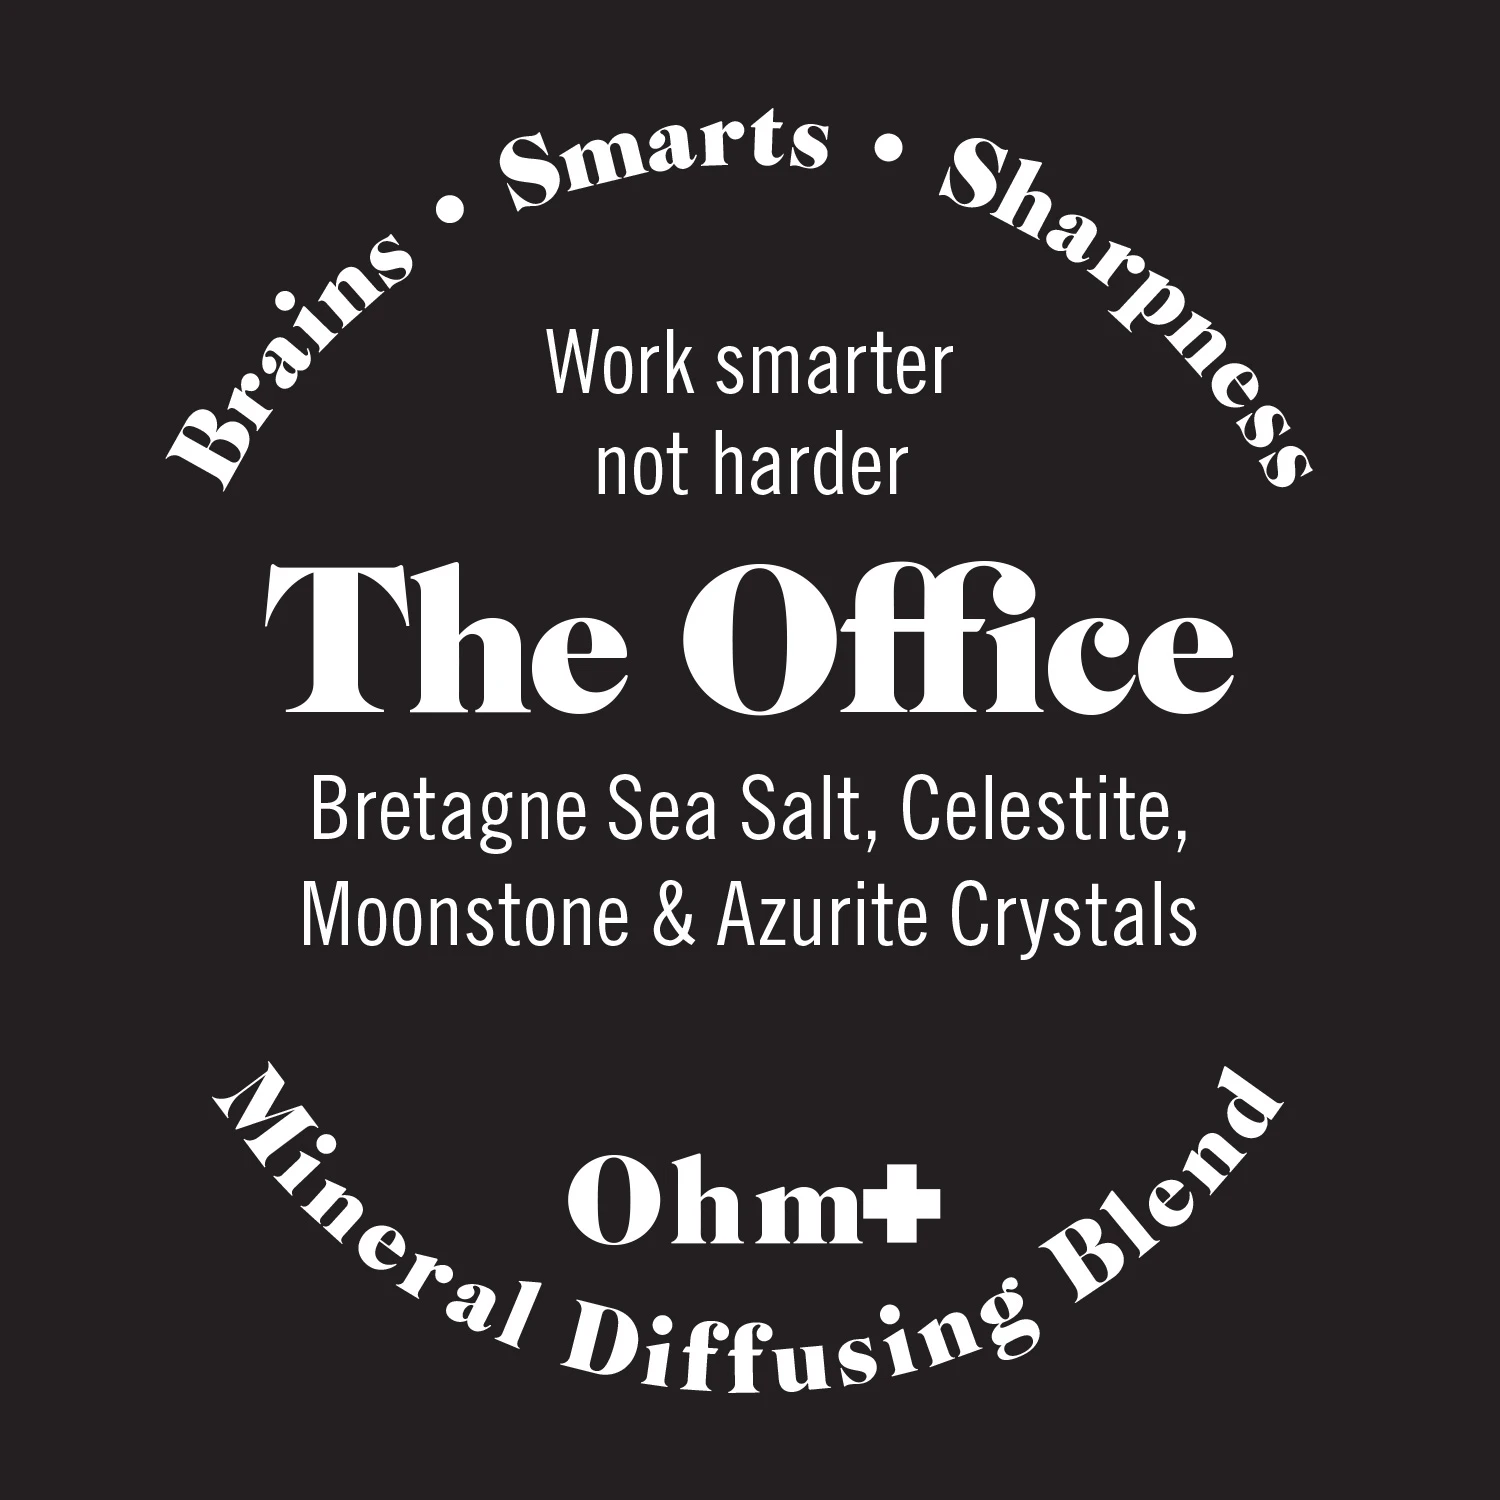 The Office, Mineral Diffusing Blend